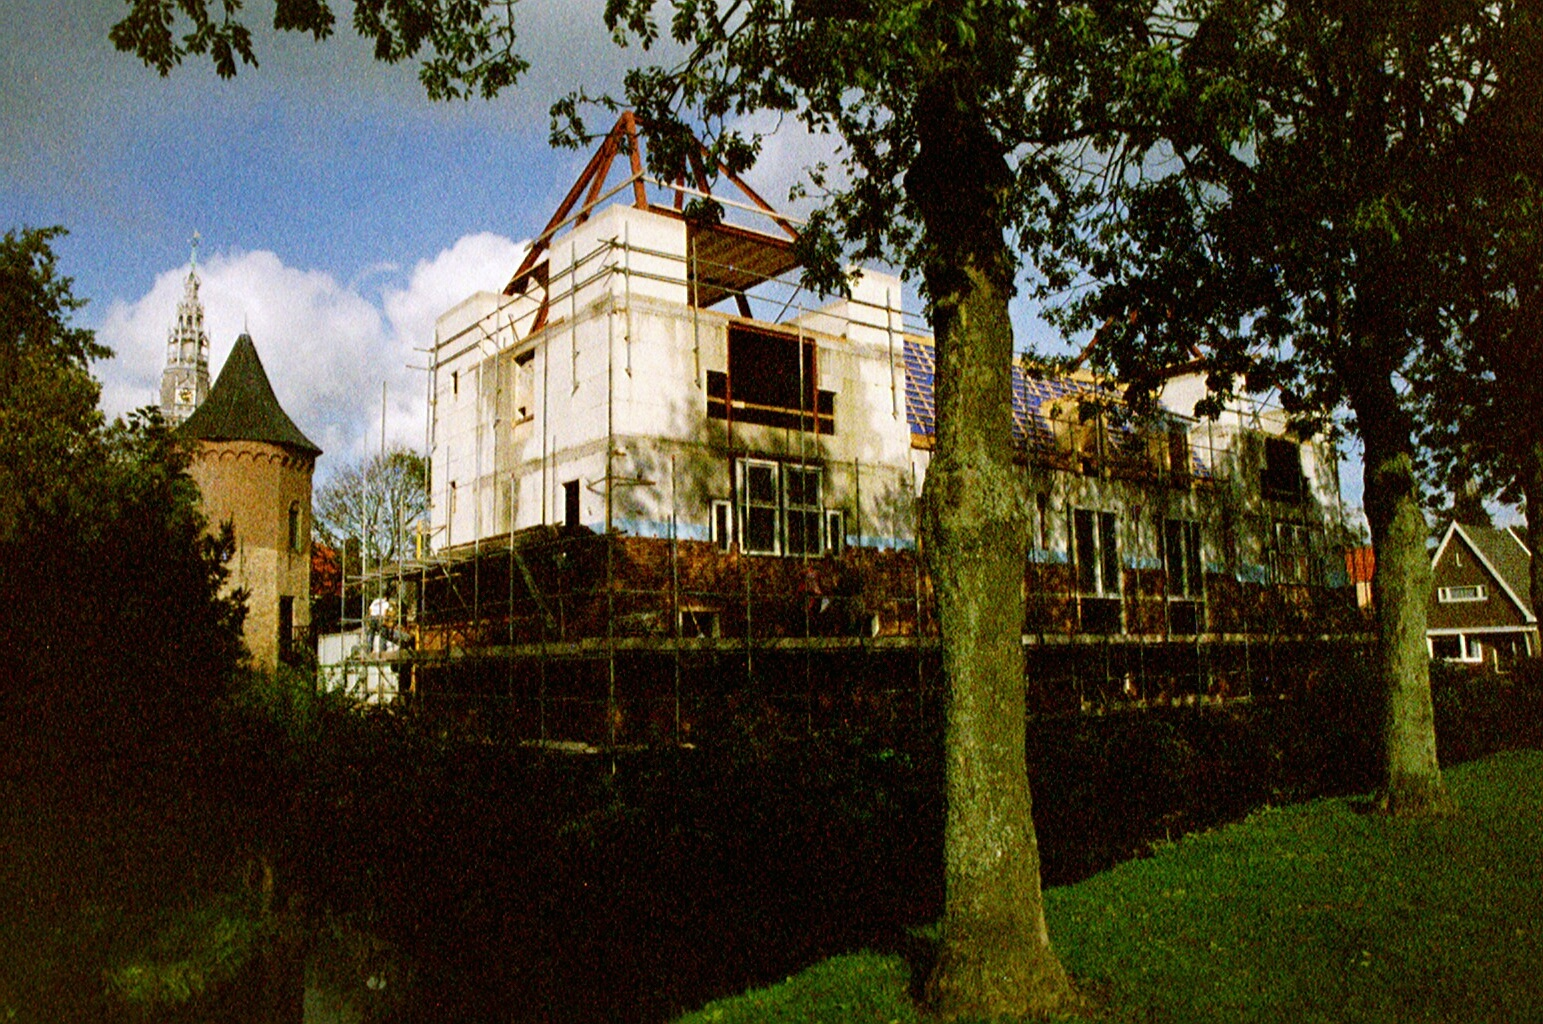 Rebuilding activities in 2001.